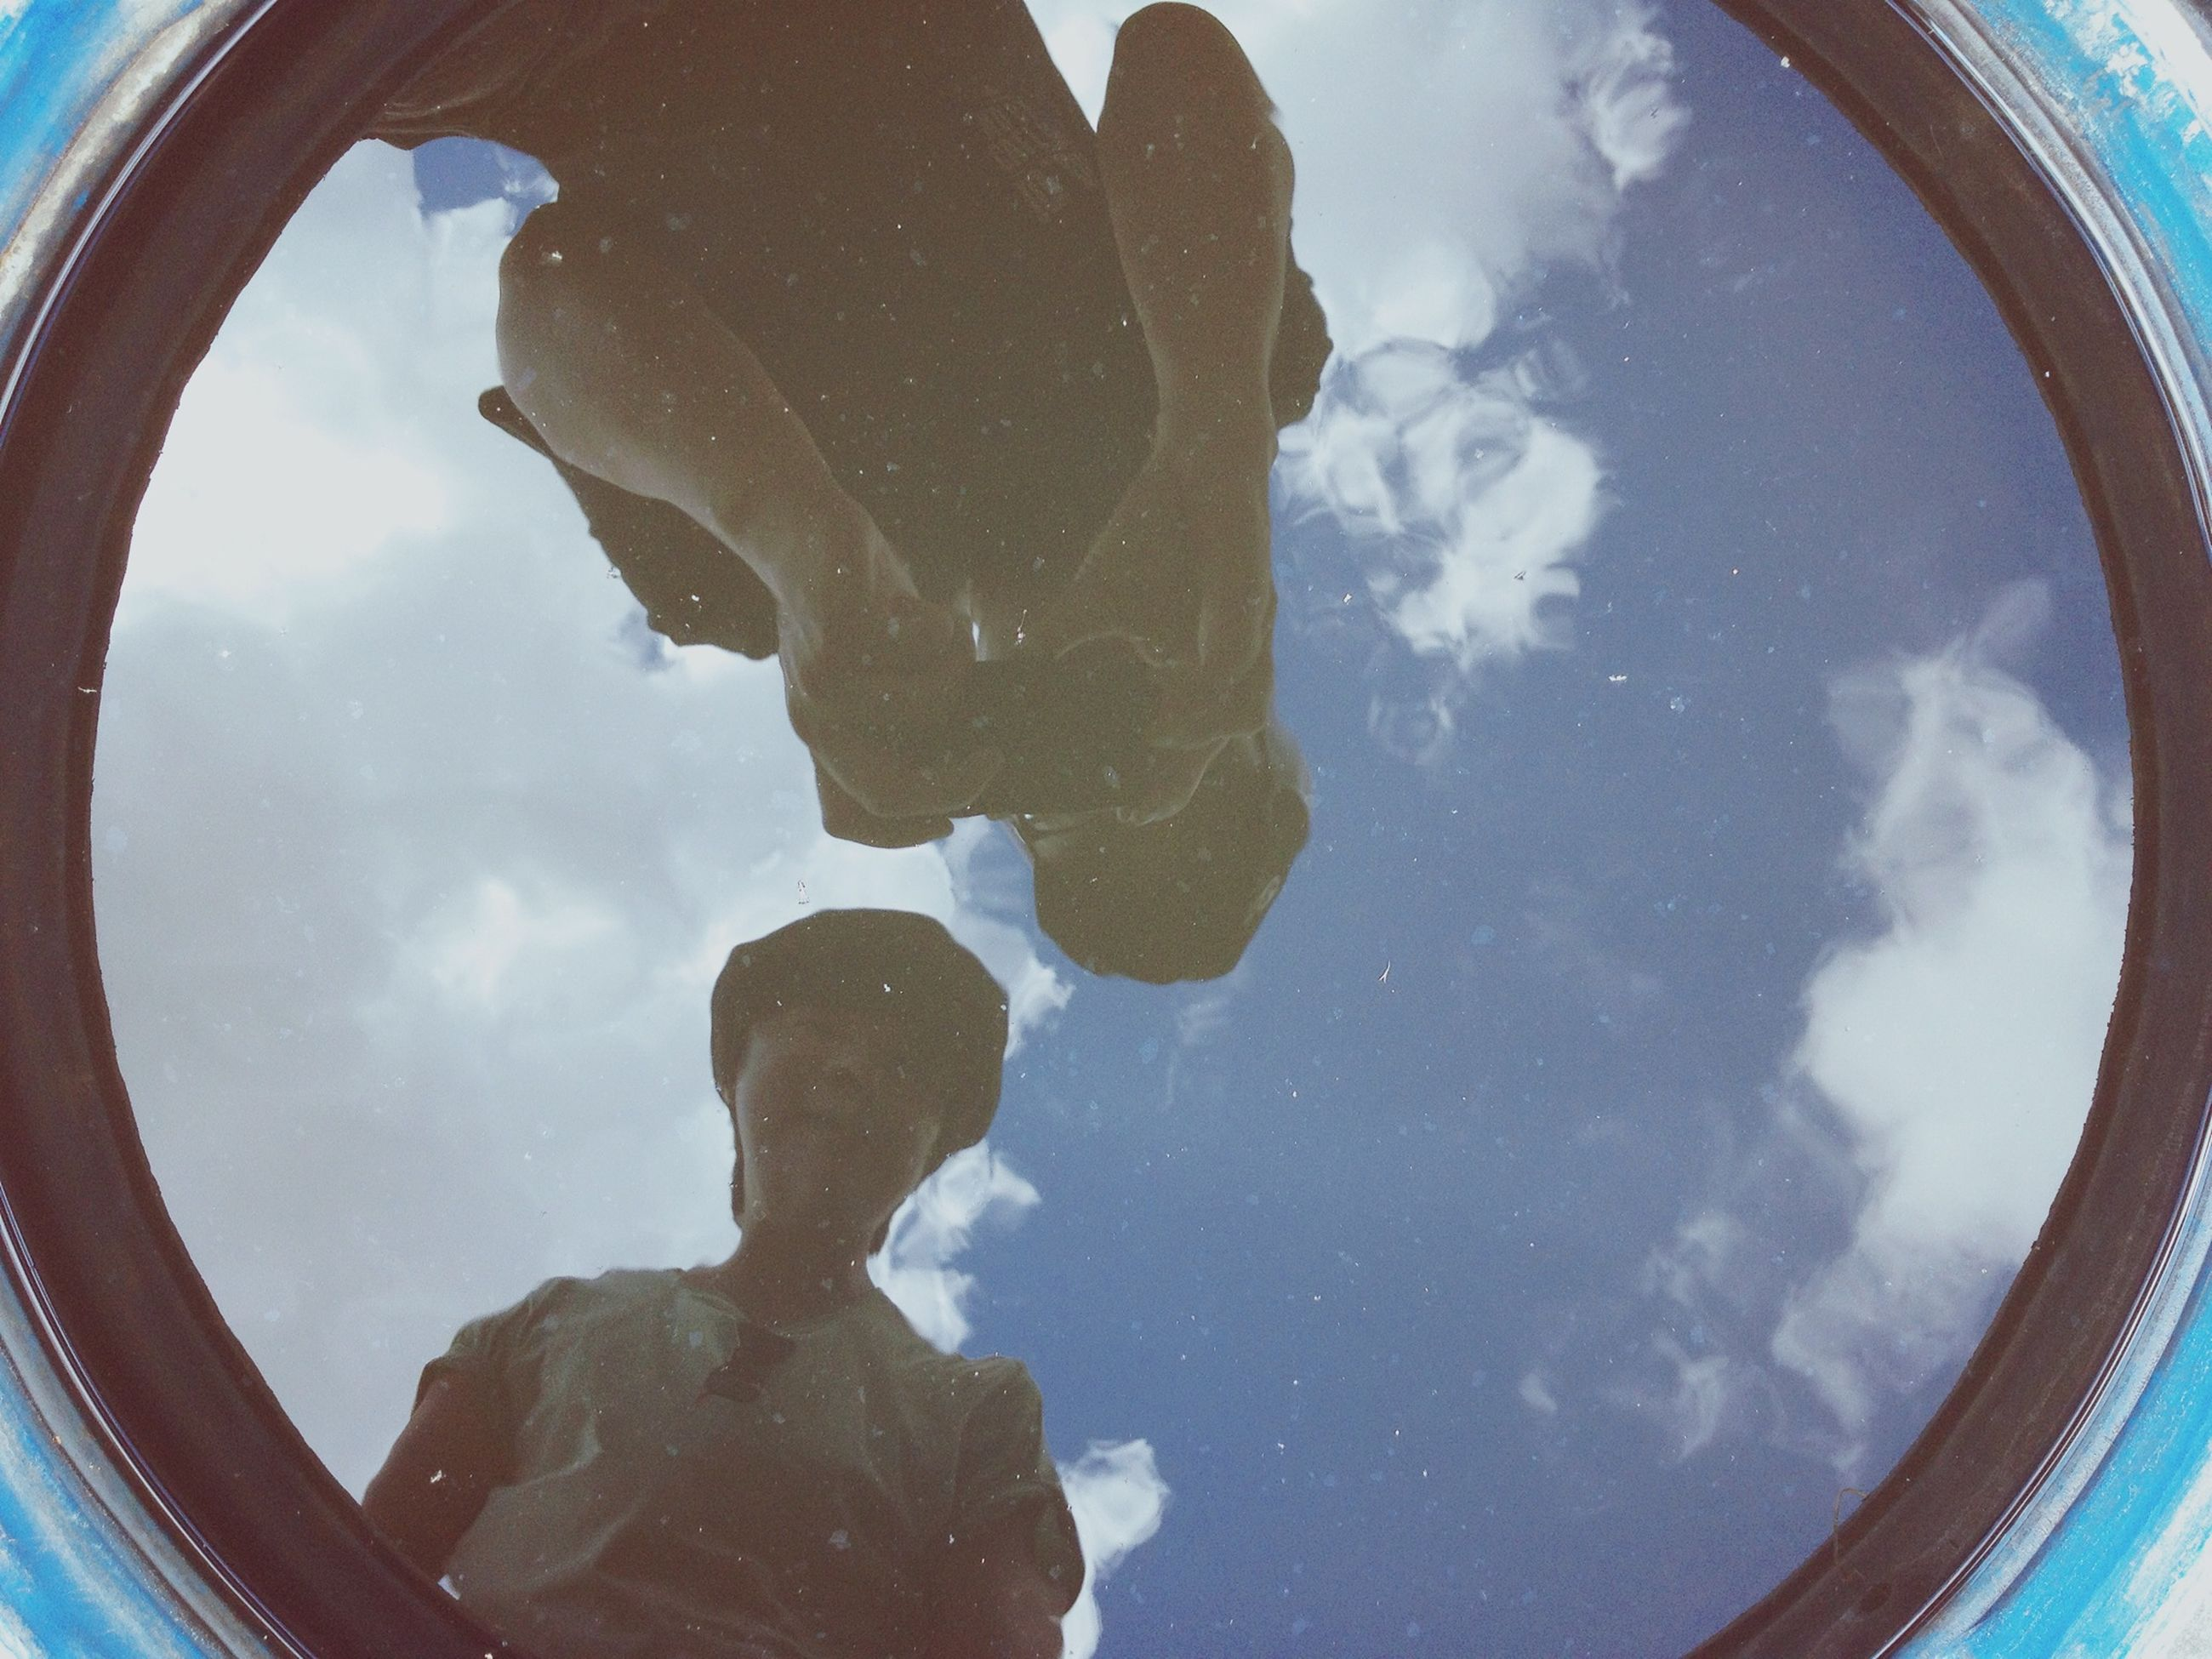 sky, cloud - sky, low angle view, cloud, fish-eye lens, cloudy, circle, blue, day, no people, transportation, nature, geometric shape, outdoors, part of, sunlight, shape, built structure, metal, arch